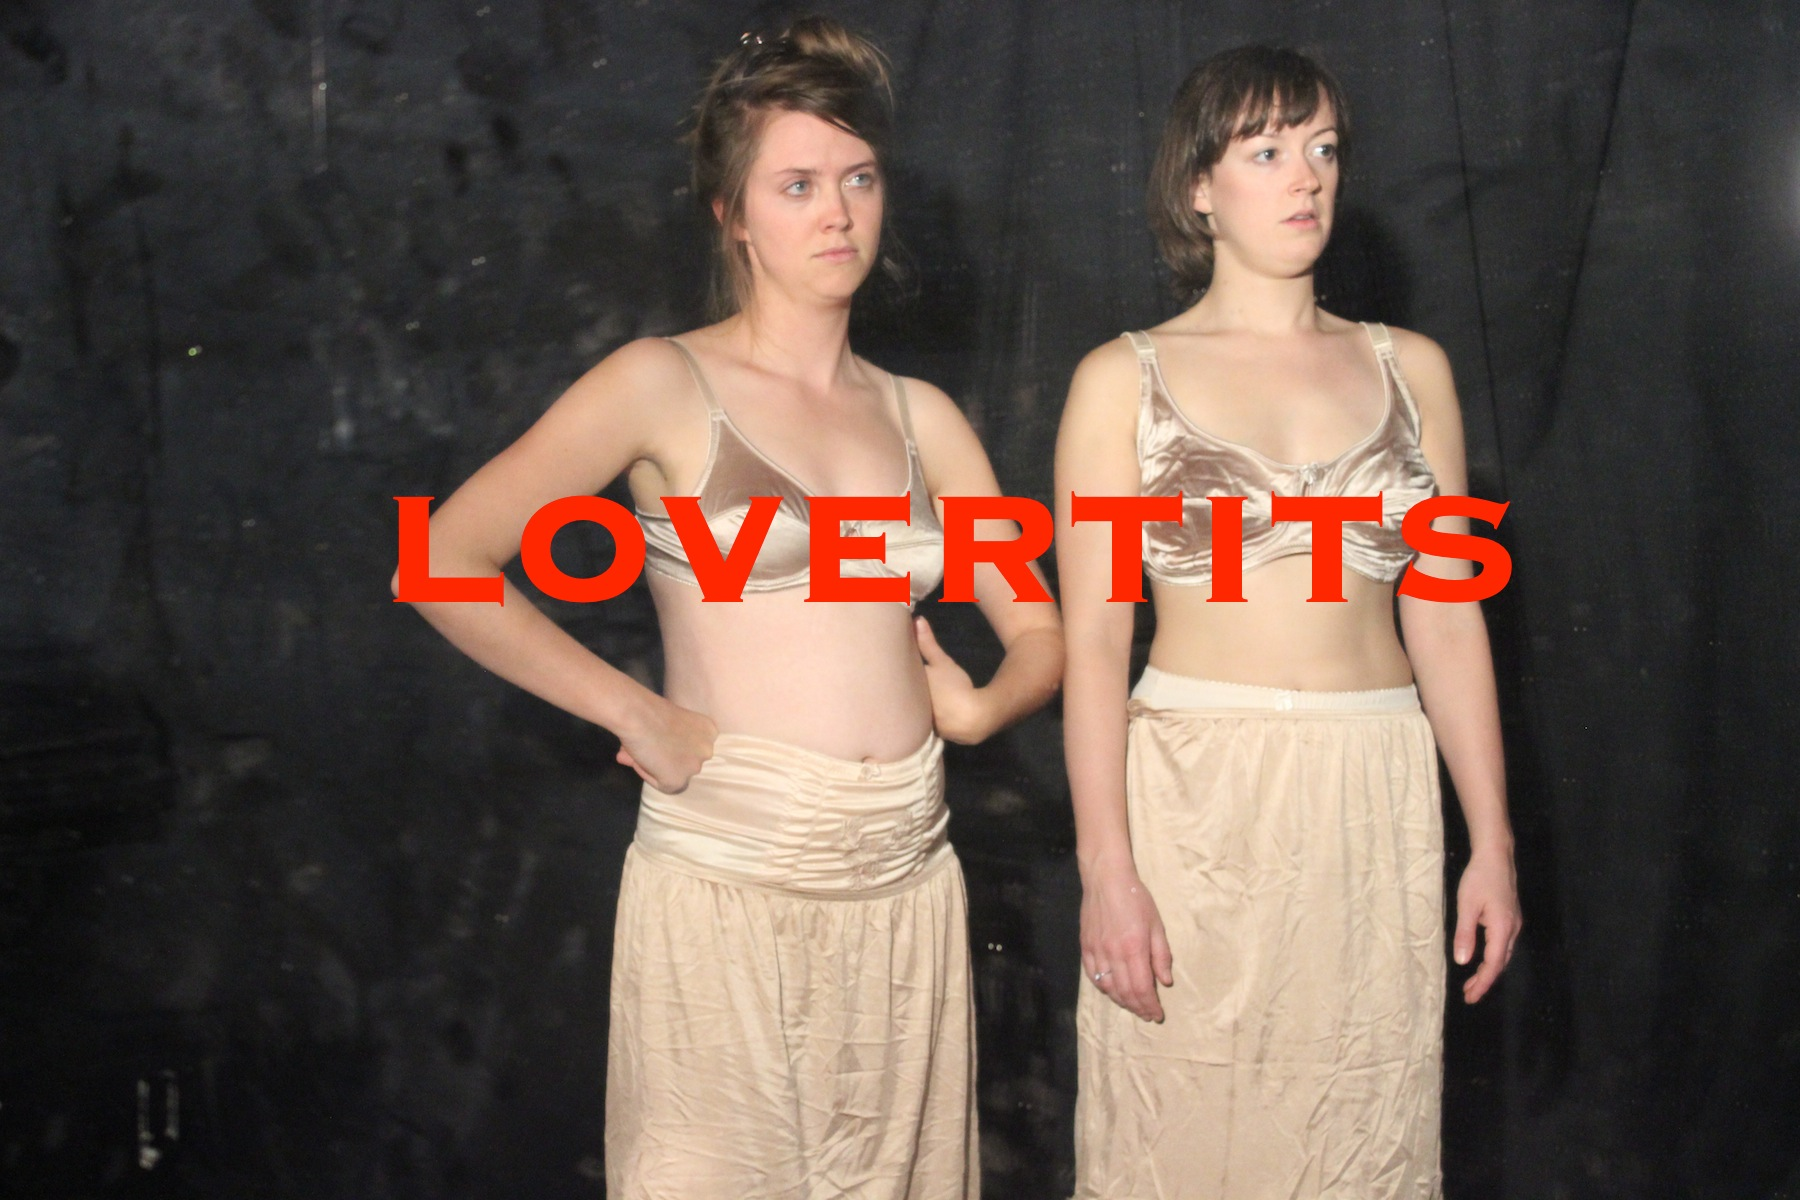 lovertits-annie-wilson